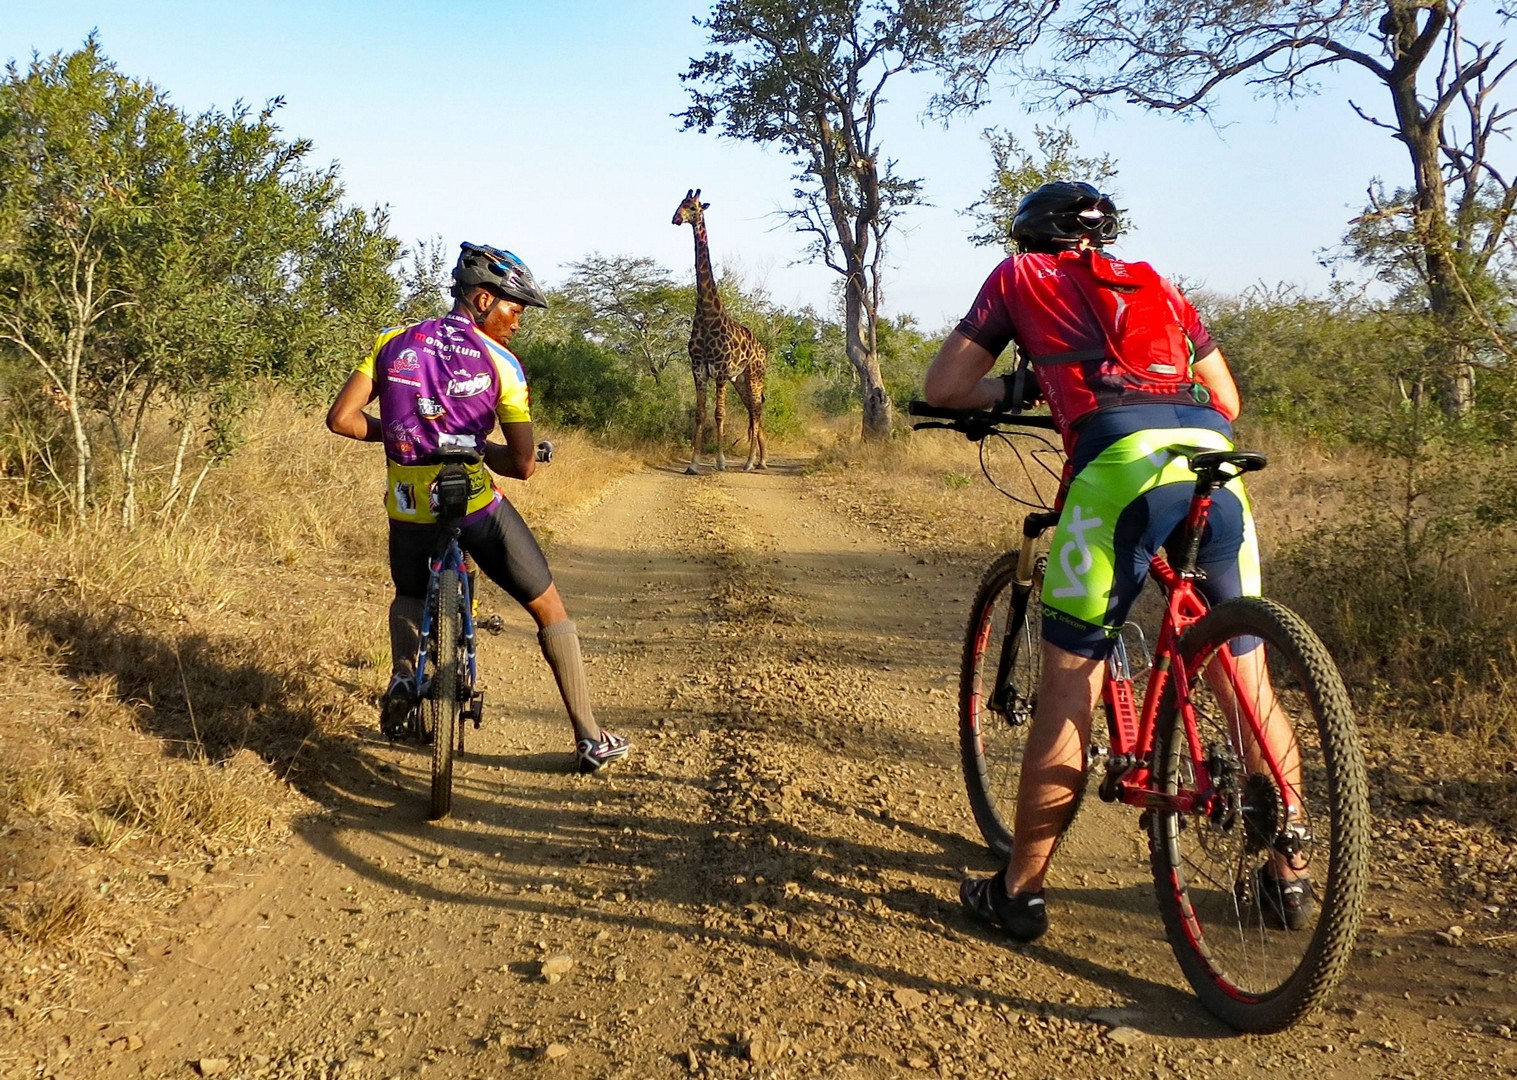 cycling-adventure-swaziland-cycling safari-saddle-skedaddle.jpg - Swaziland - Cycling Safari - Cycling Adventures